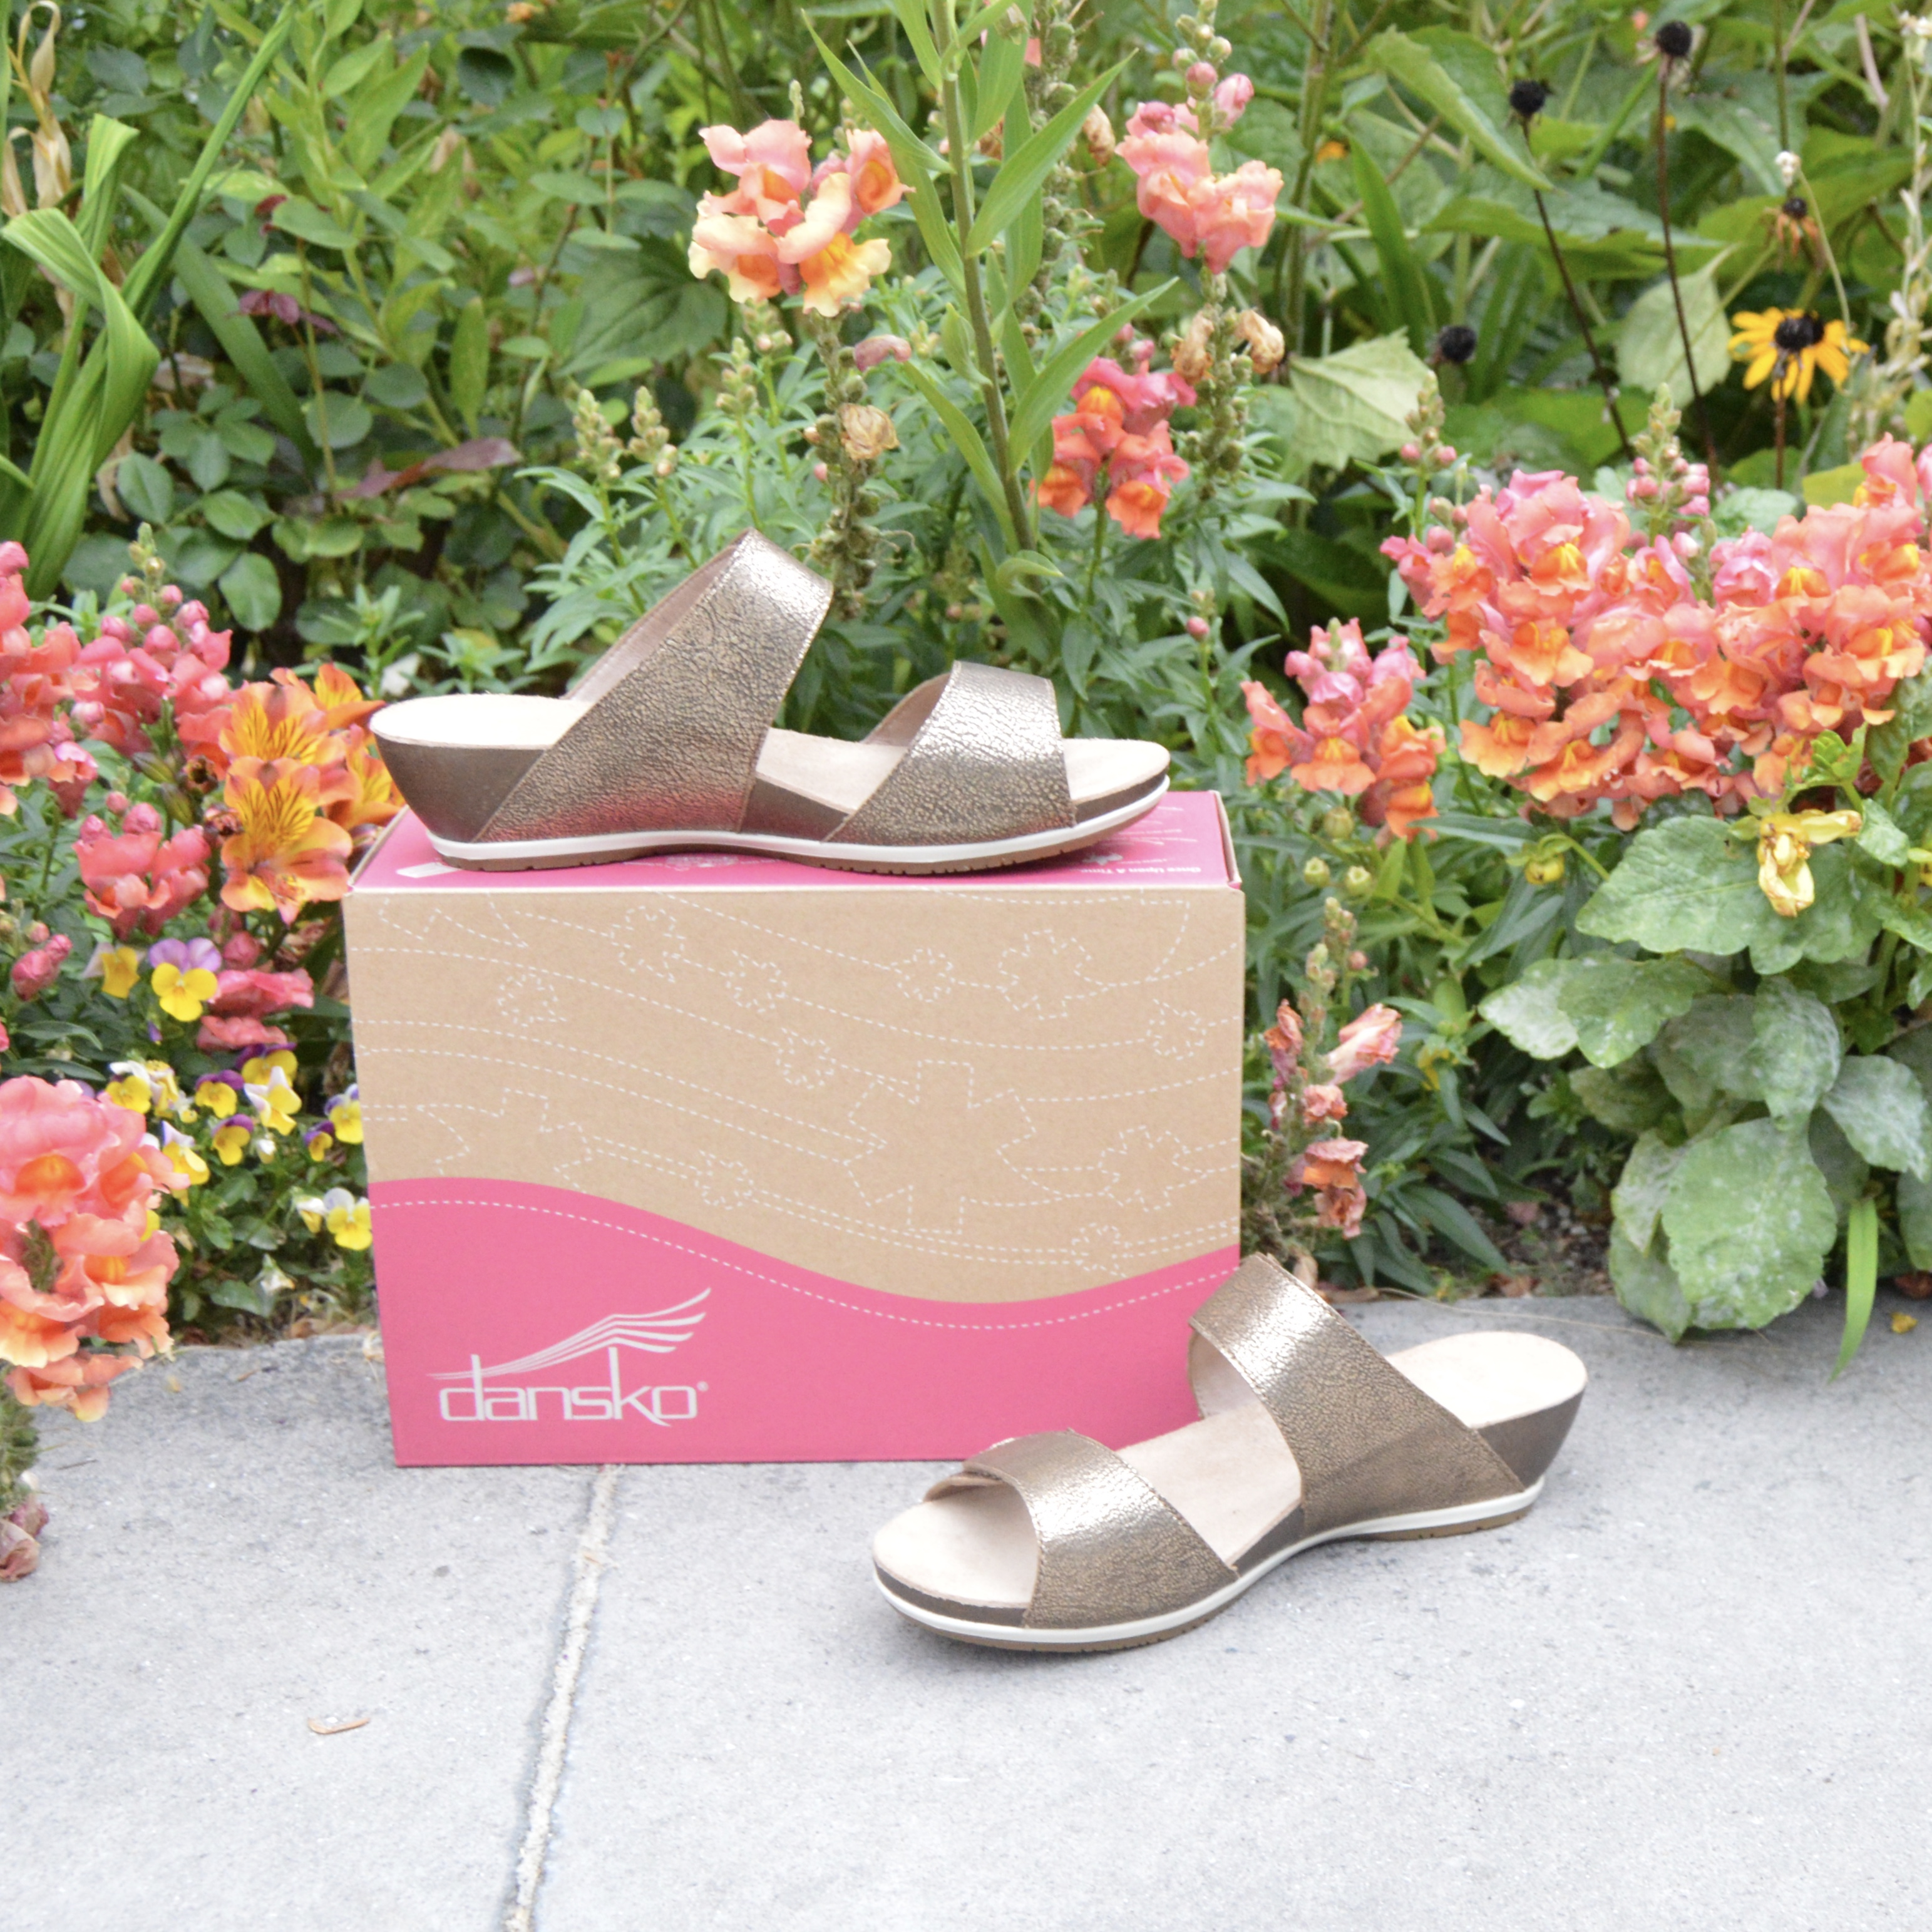 Dansko sandal review